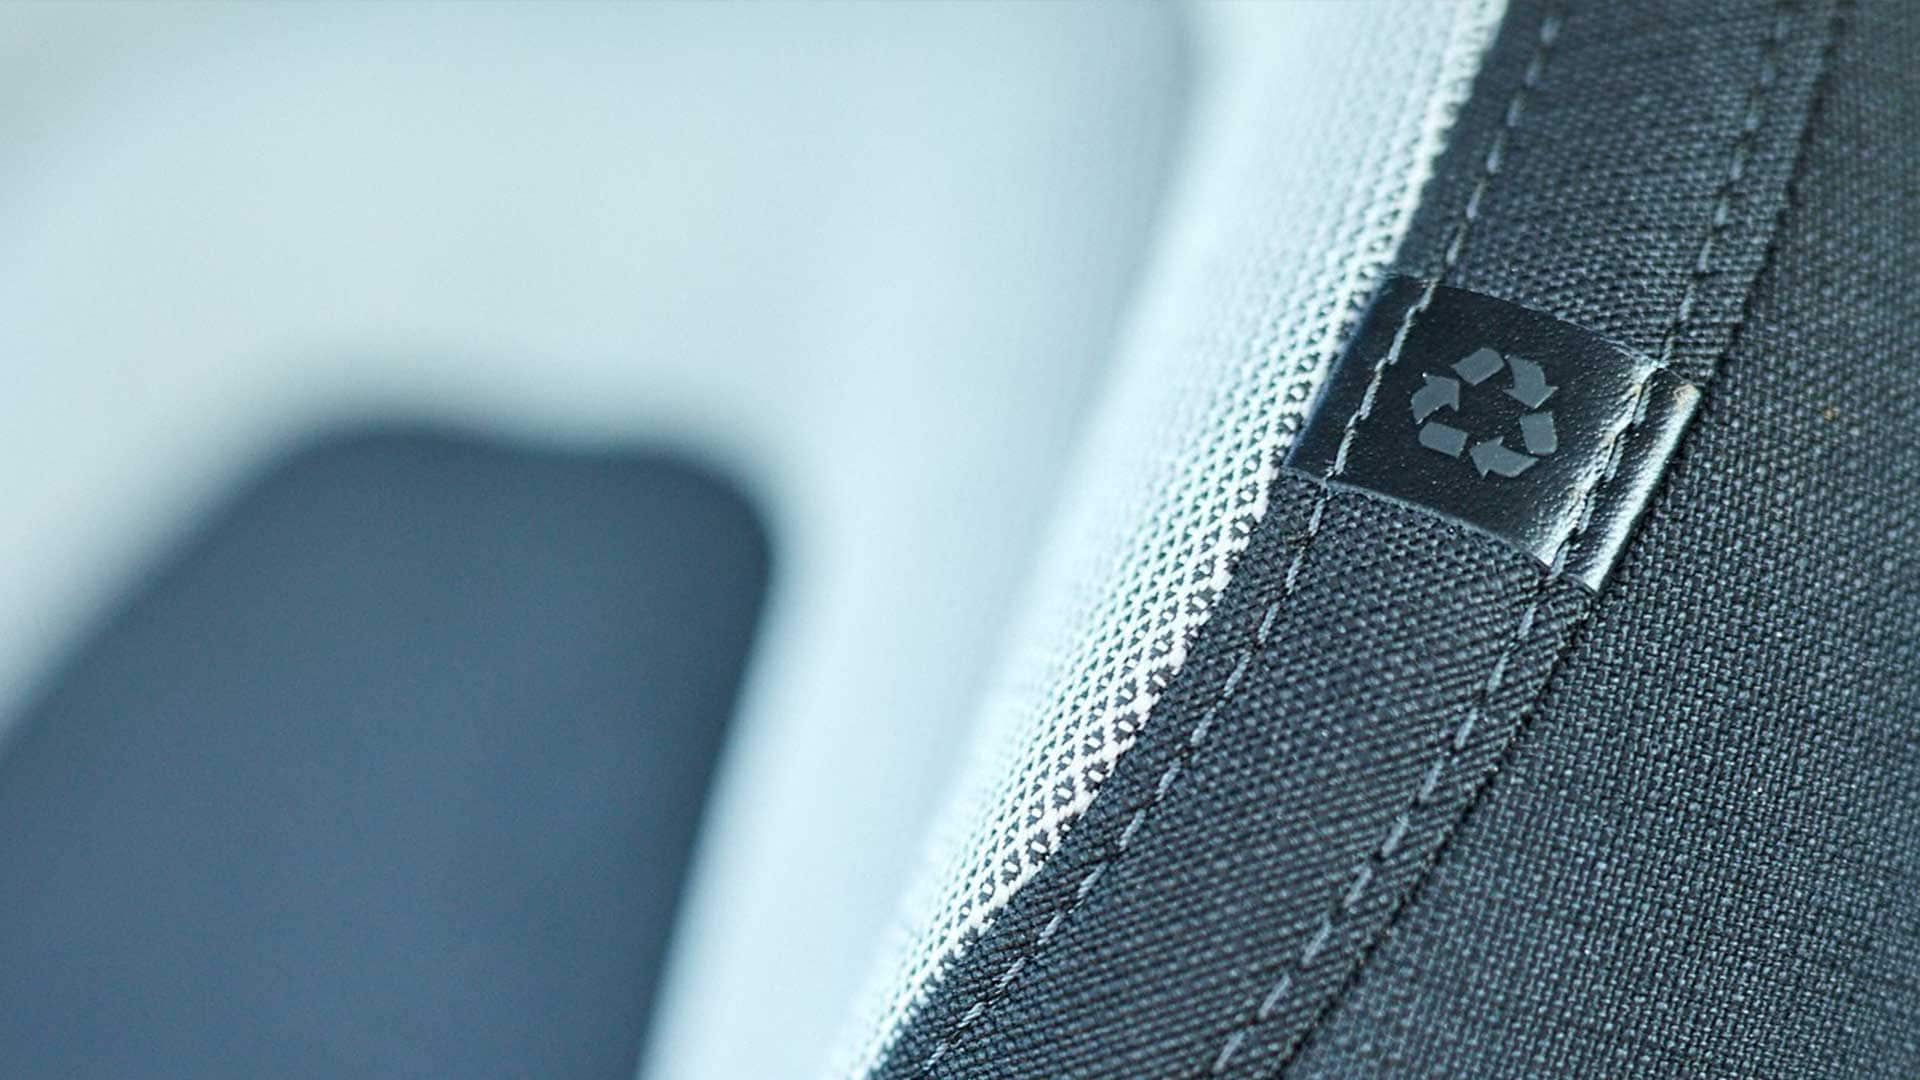 Close-up of a car seat with the universal recycling symbol attached to the fabric.